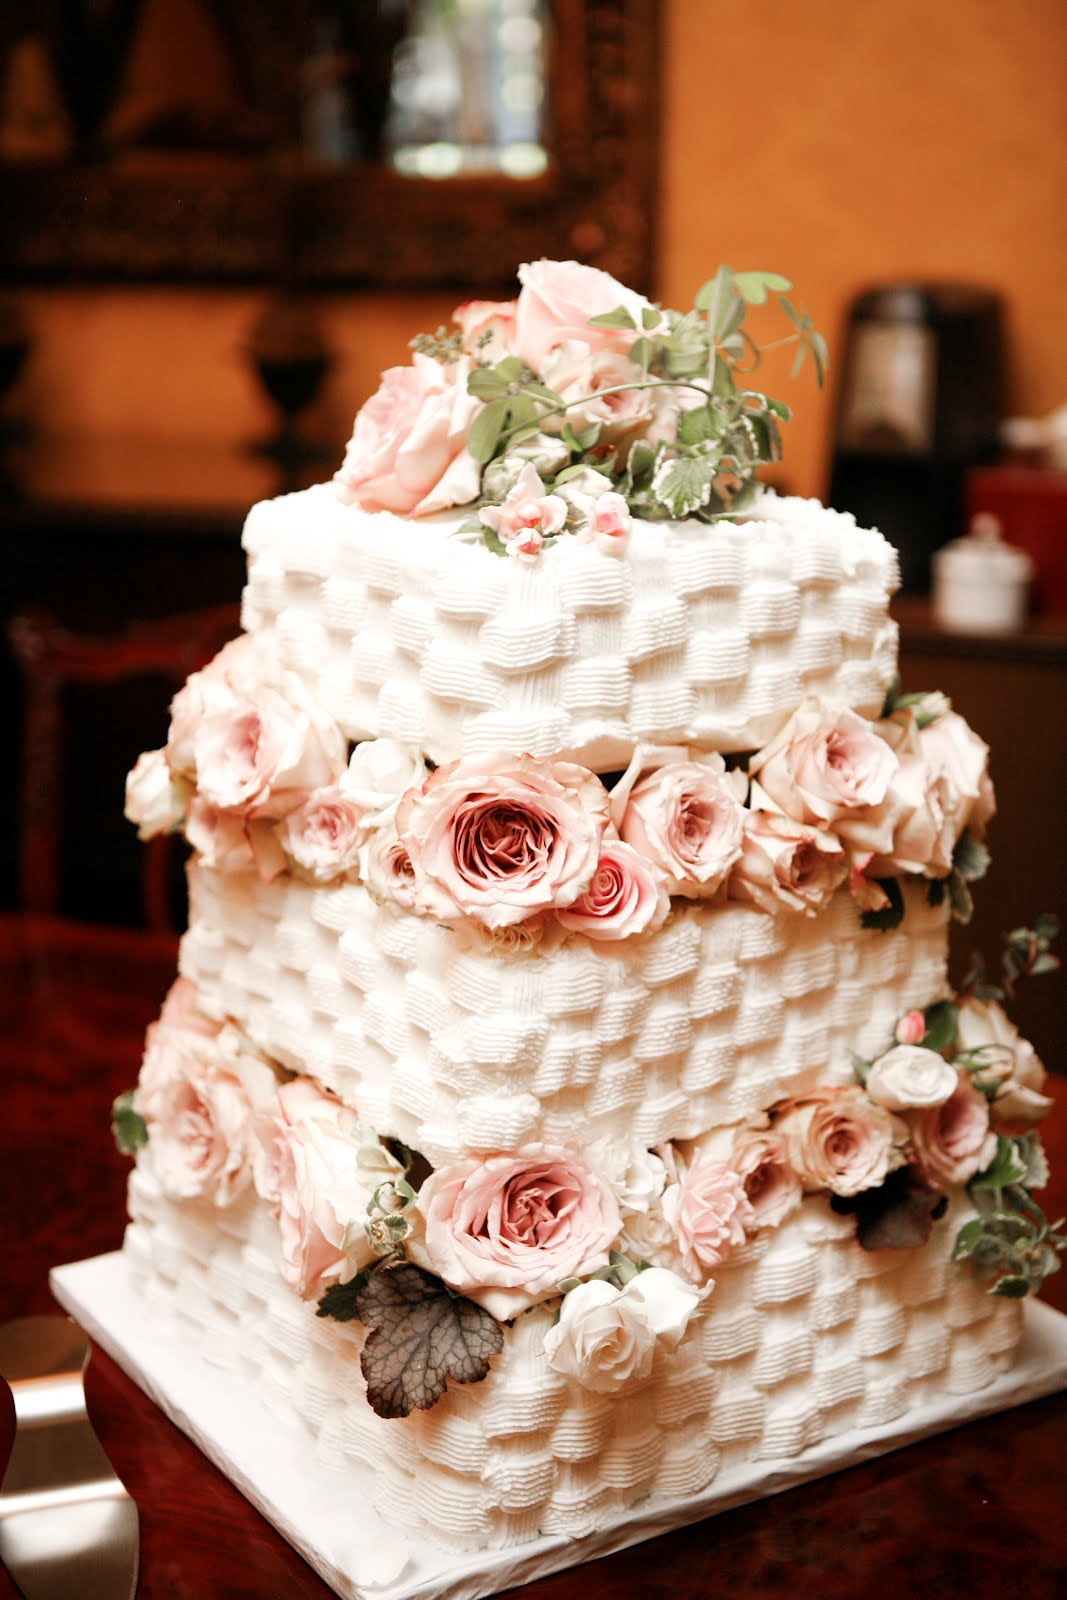 The most beautiful wedding cakes  Best wedding cake frosting Best wedding cake frosting